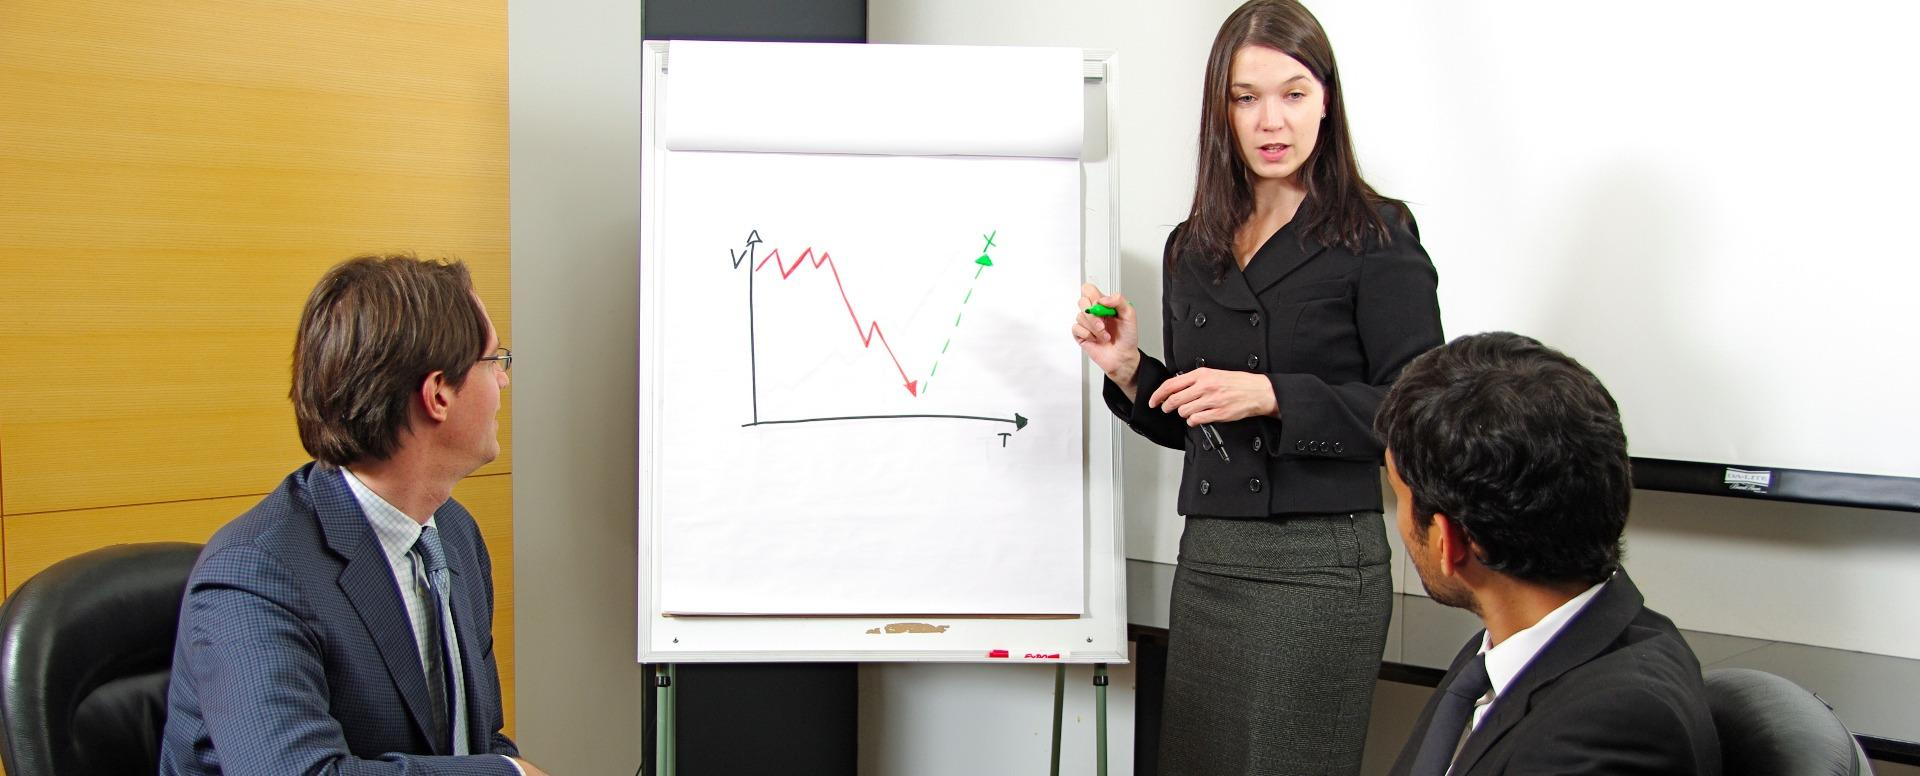 How to Give Financial Presentations Create-eLearning